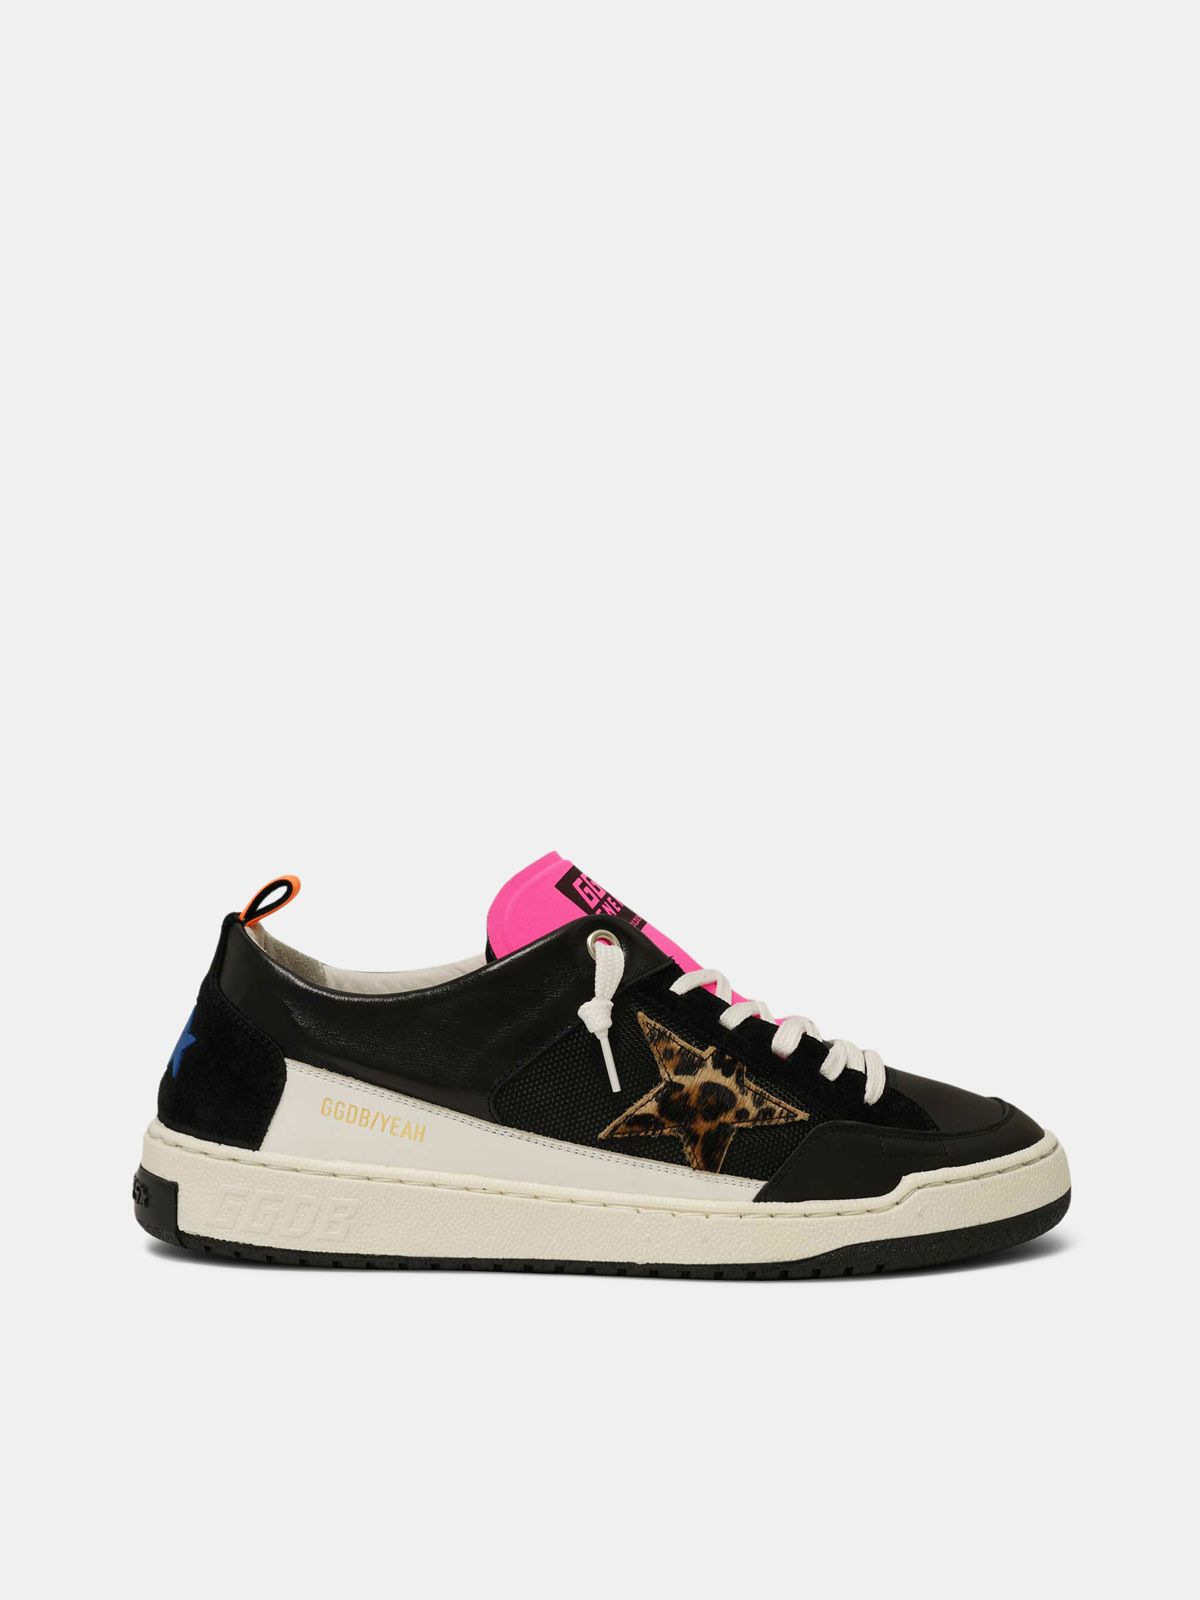 Golden Goose - Sneakers Yeah! nere con stella leopardata in